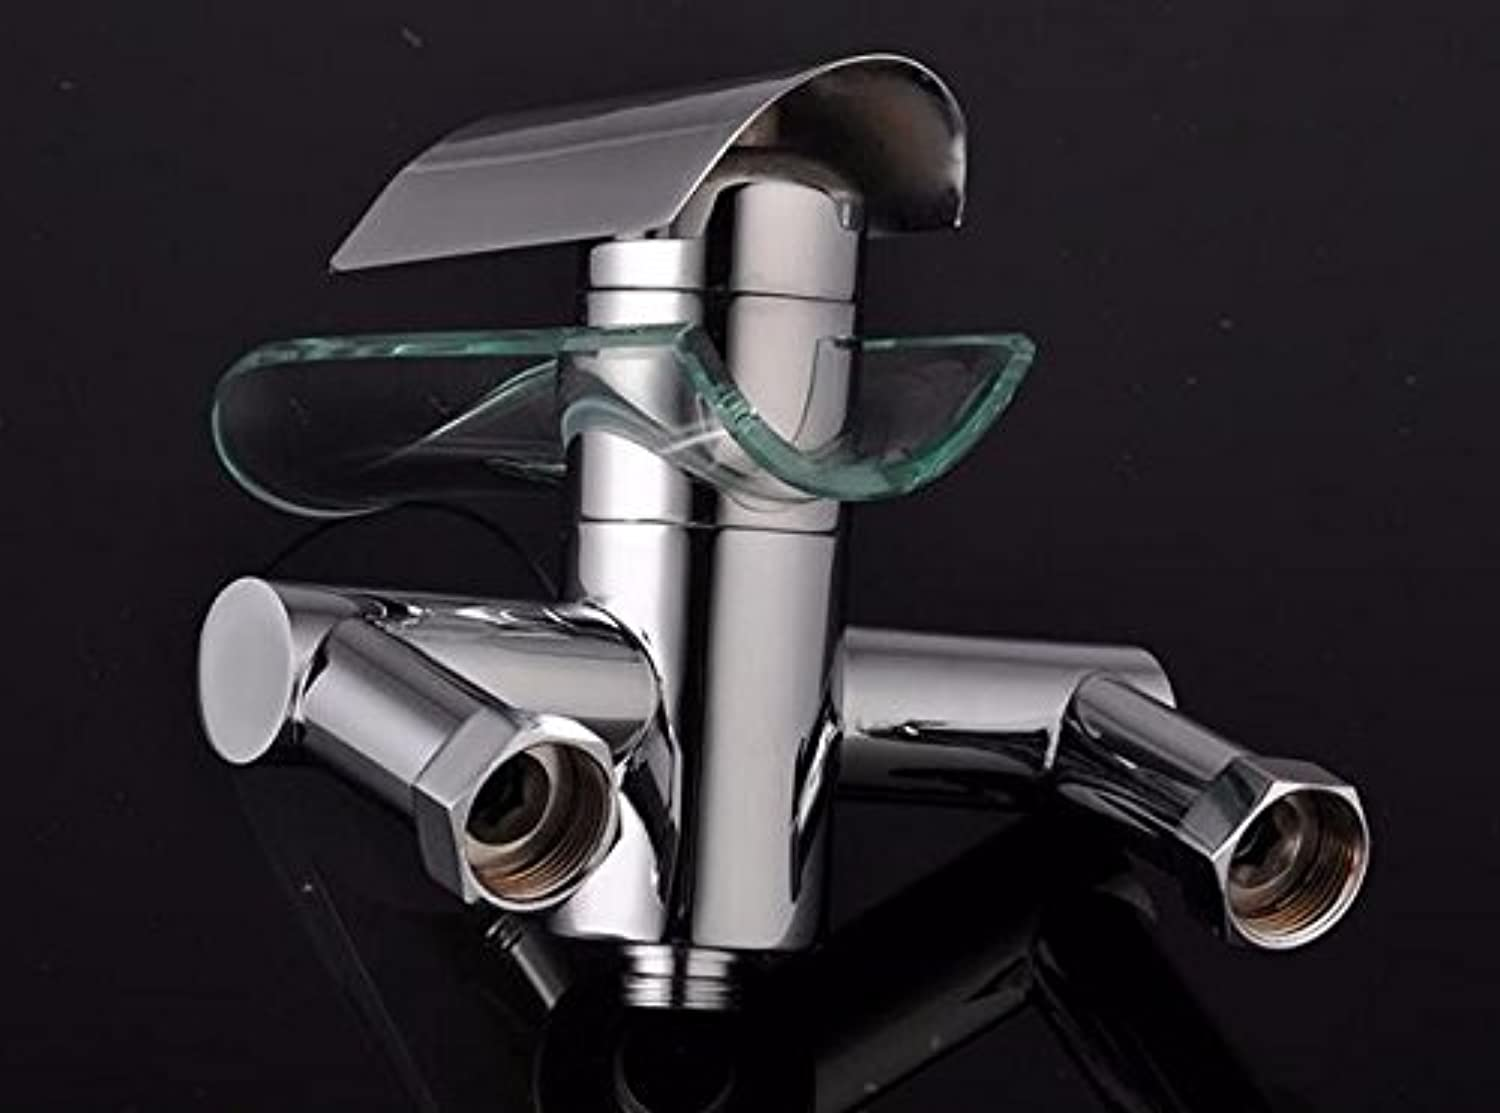 QMPZG-Lead-free mixed water, durable tempered glass faucet wrench, Plumbing Hardware sanitary ware